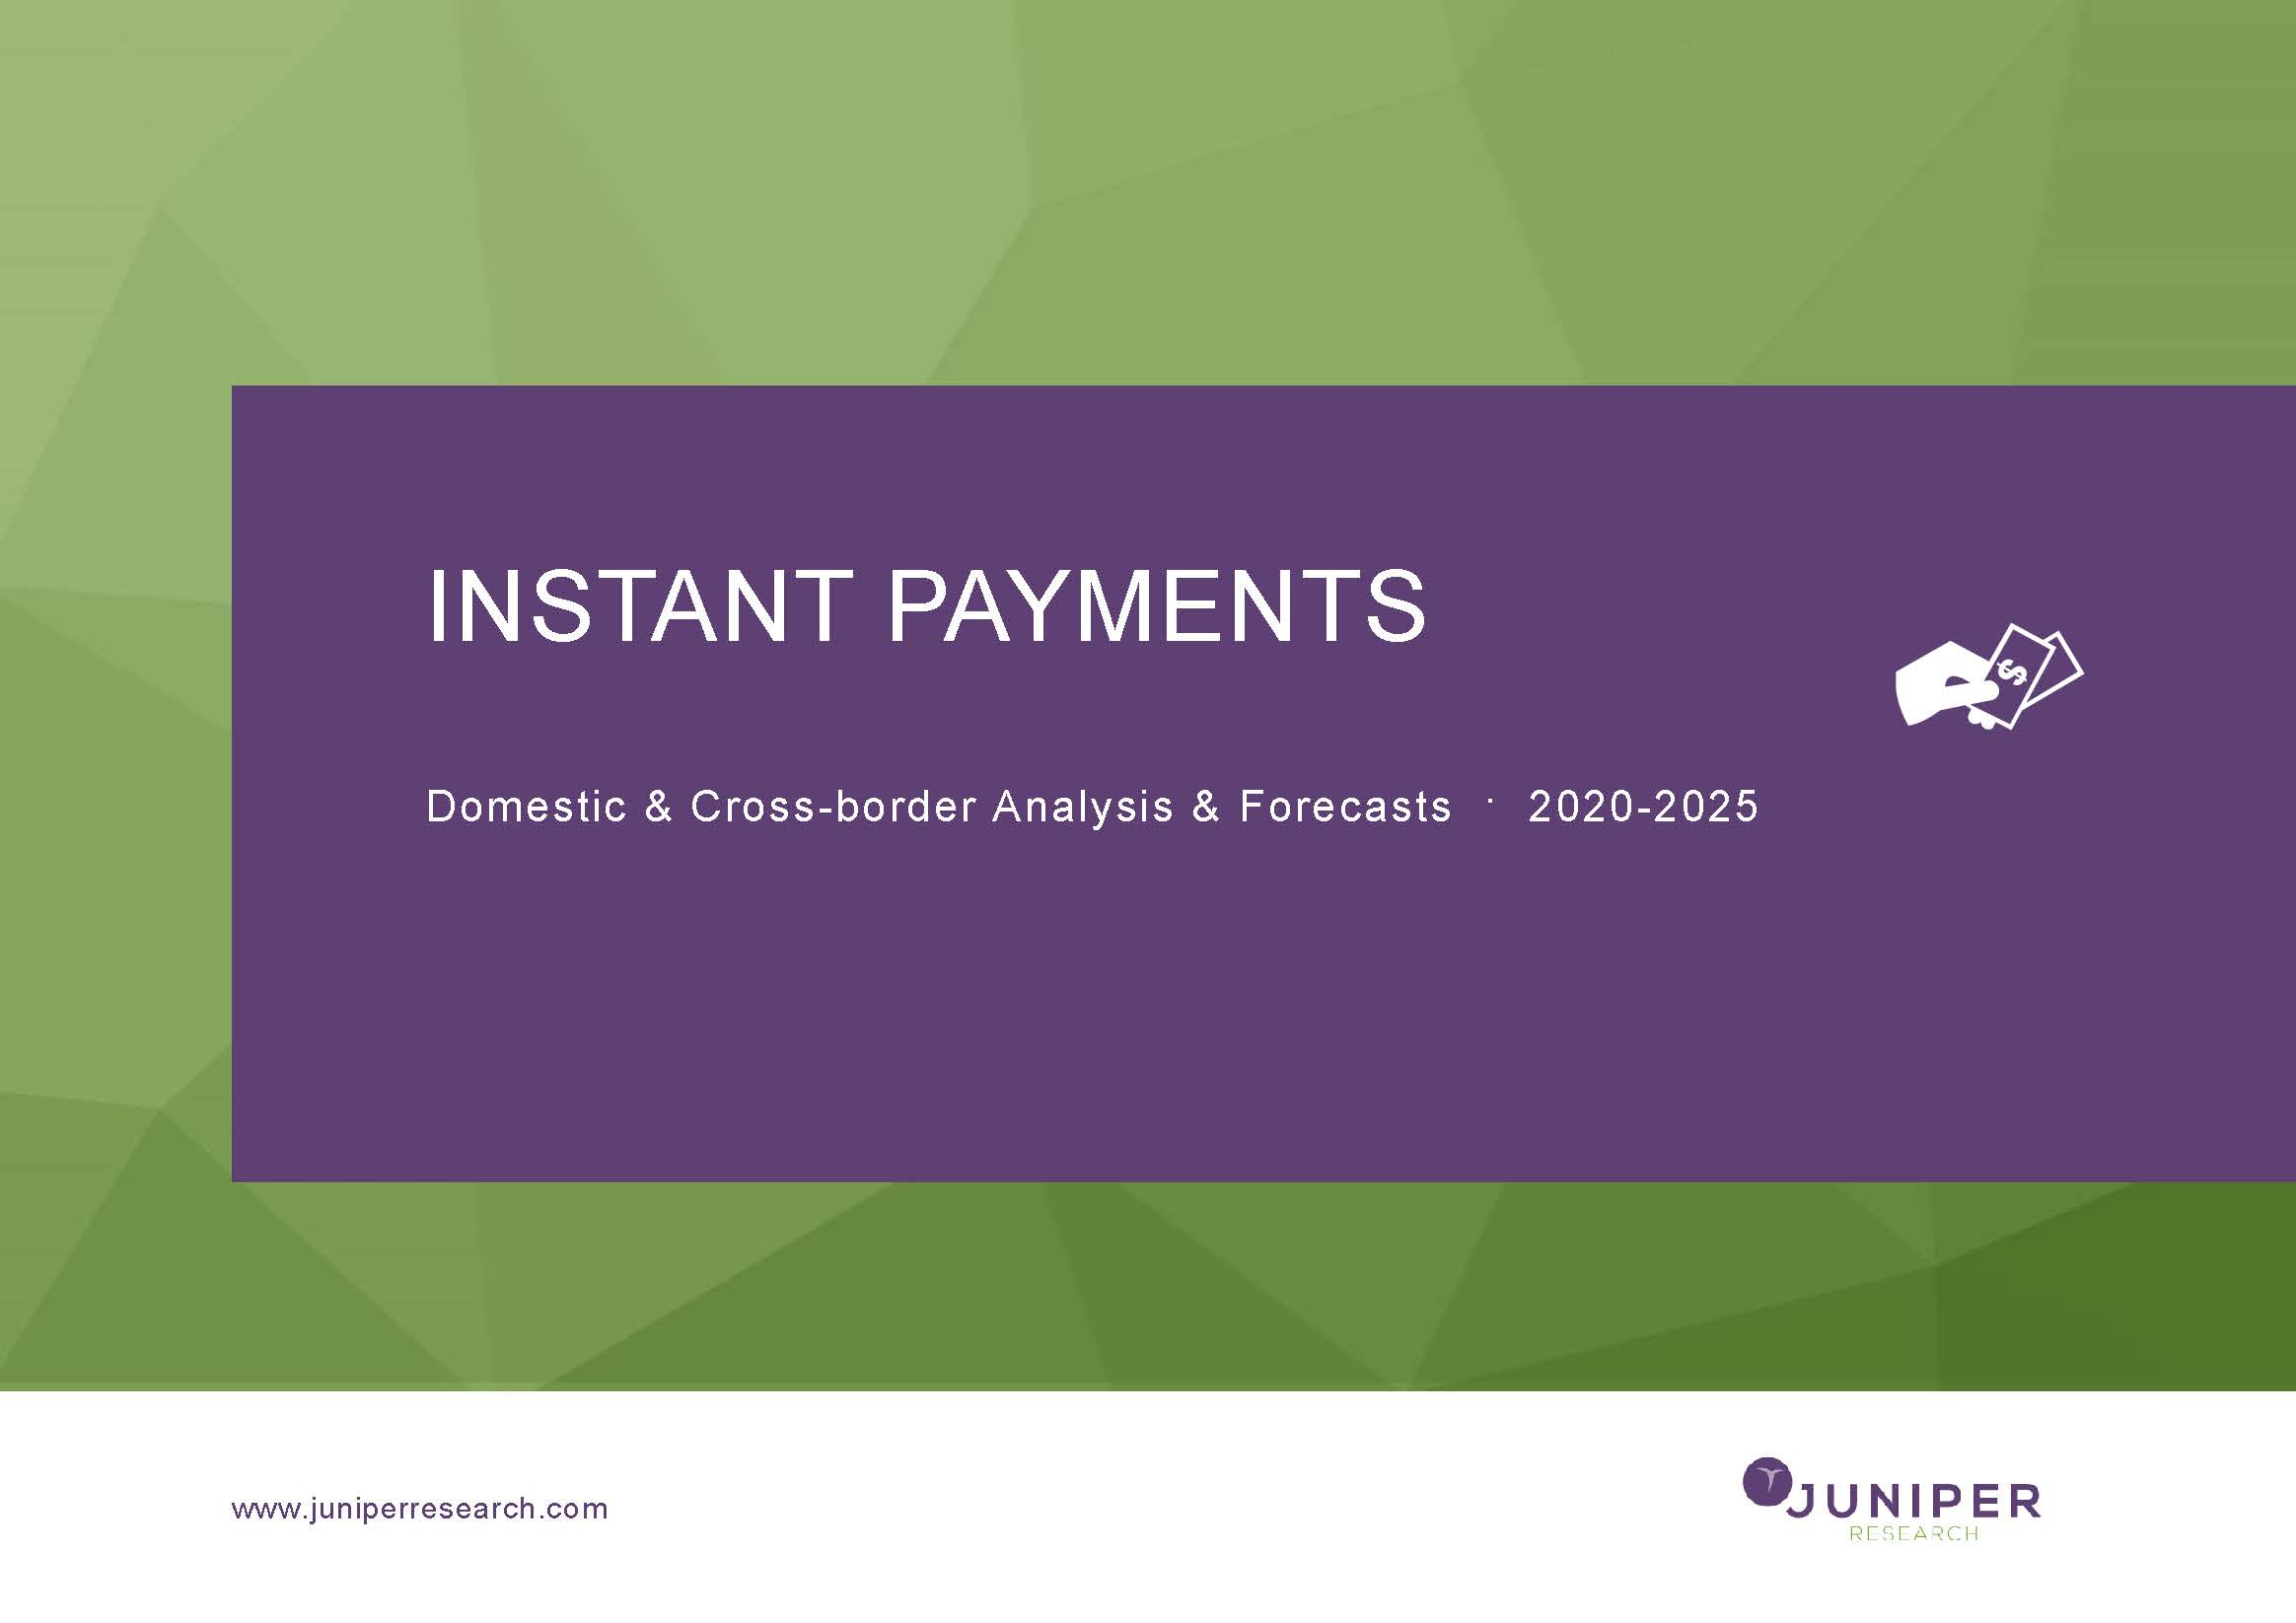 Instant Payments: Domestic & Cross-border Analysis & Forecasts